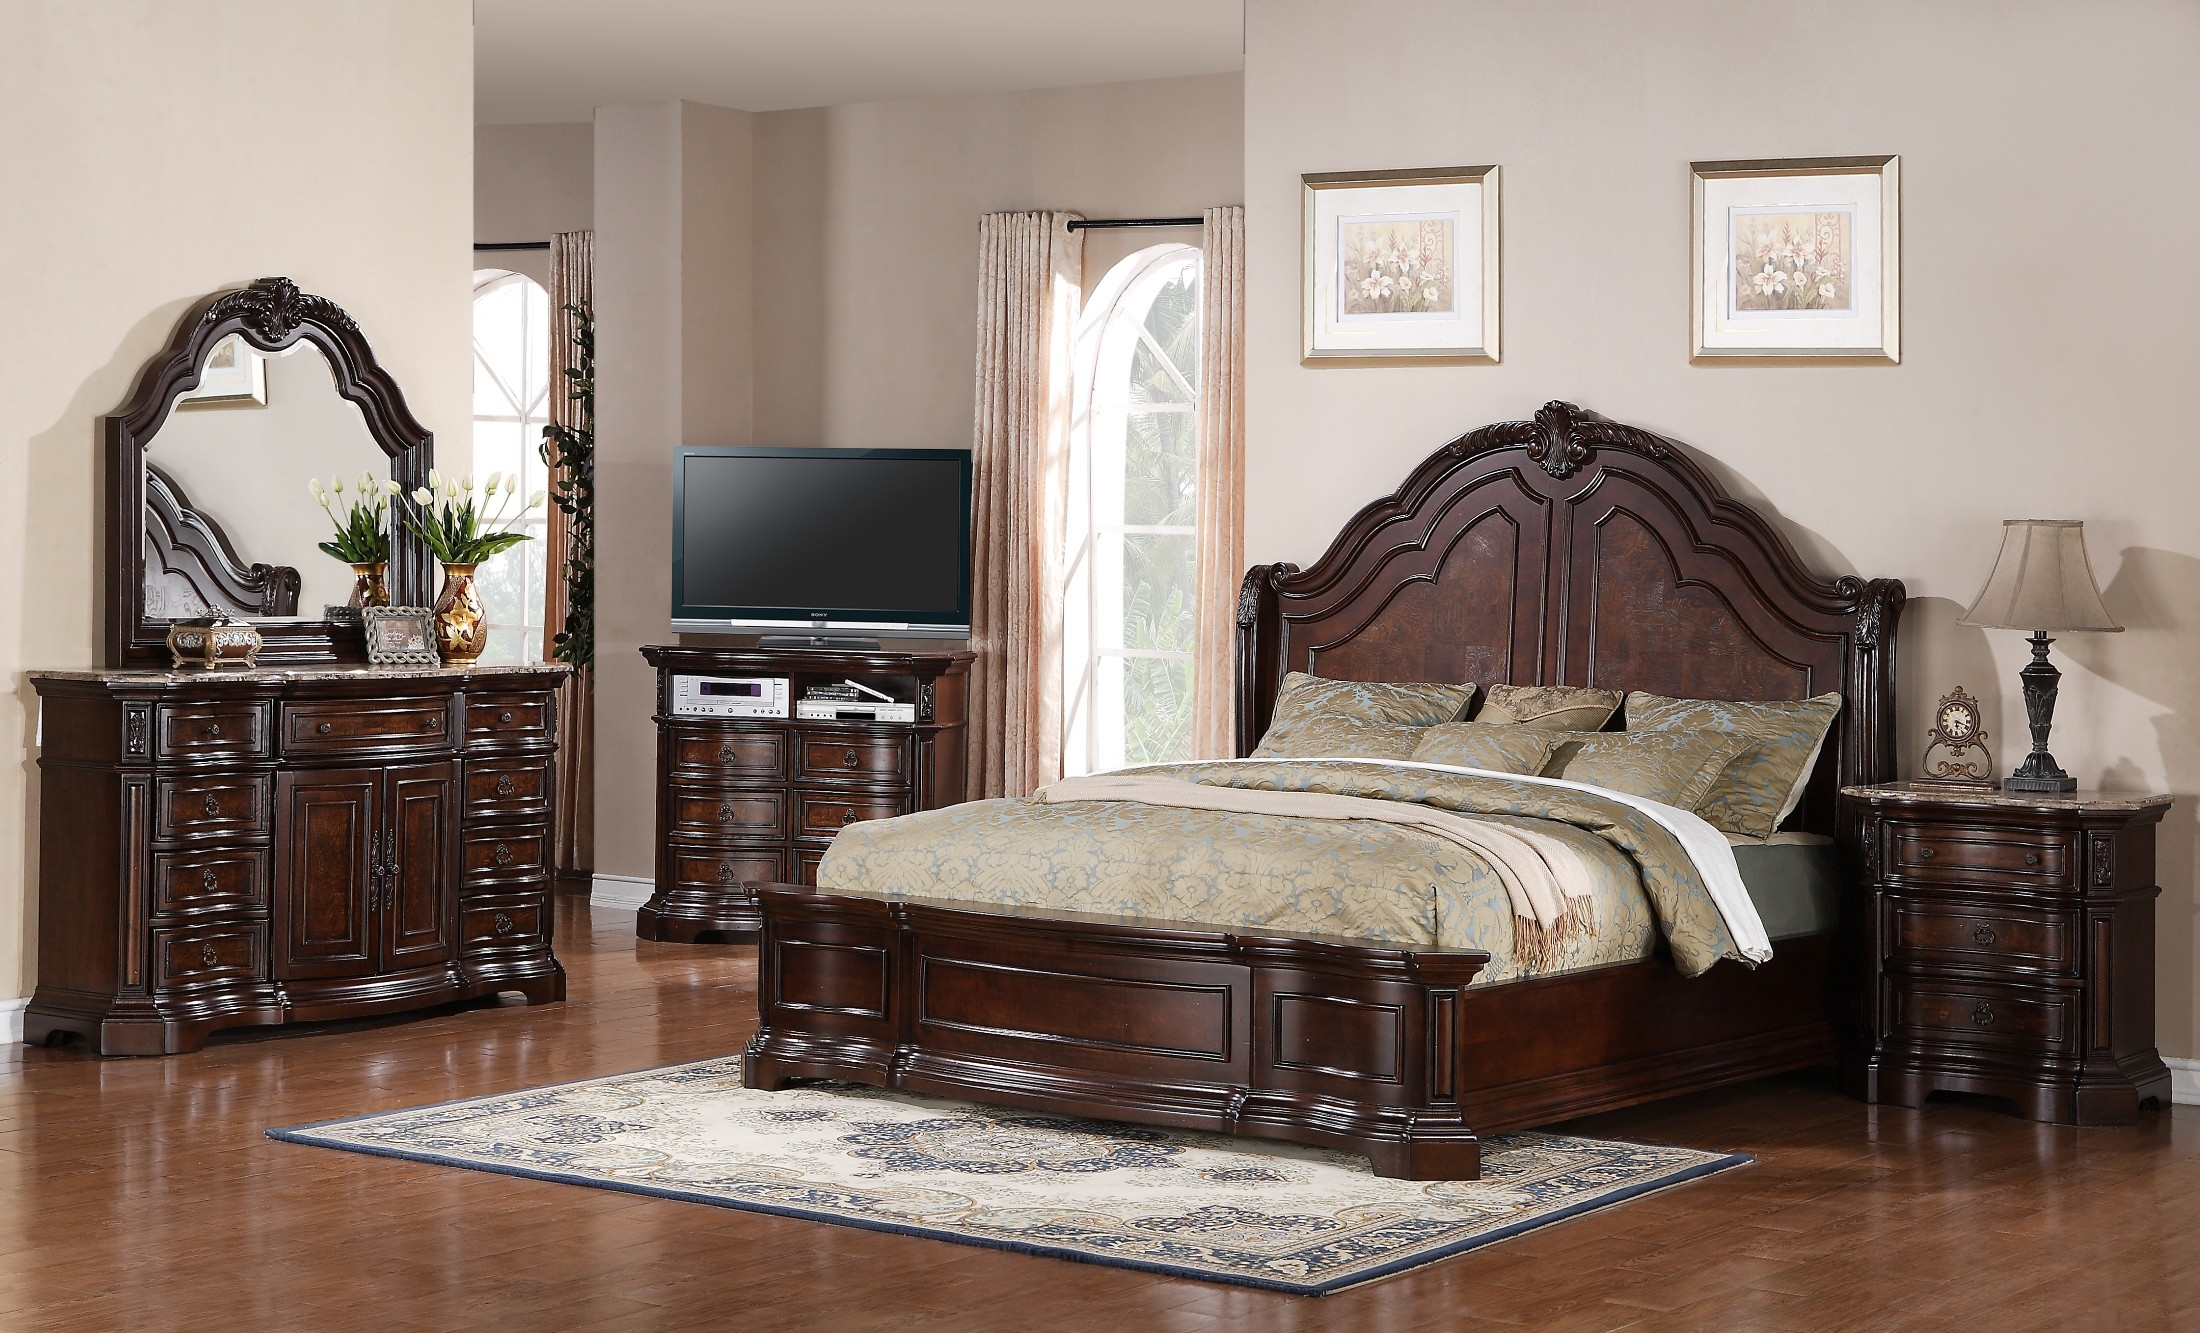 Awesome King Bedroom Sets Cheap Concept